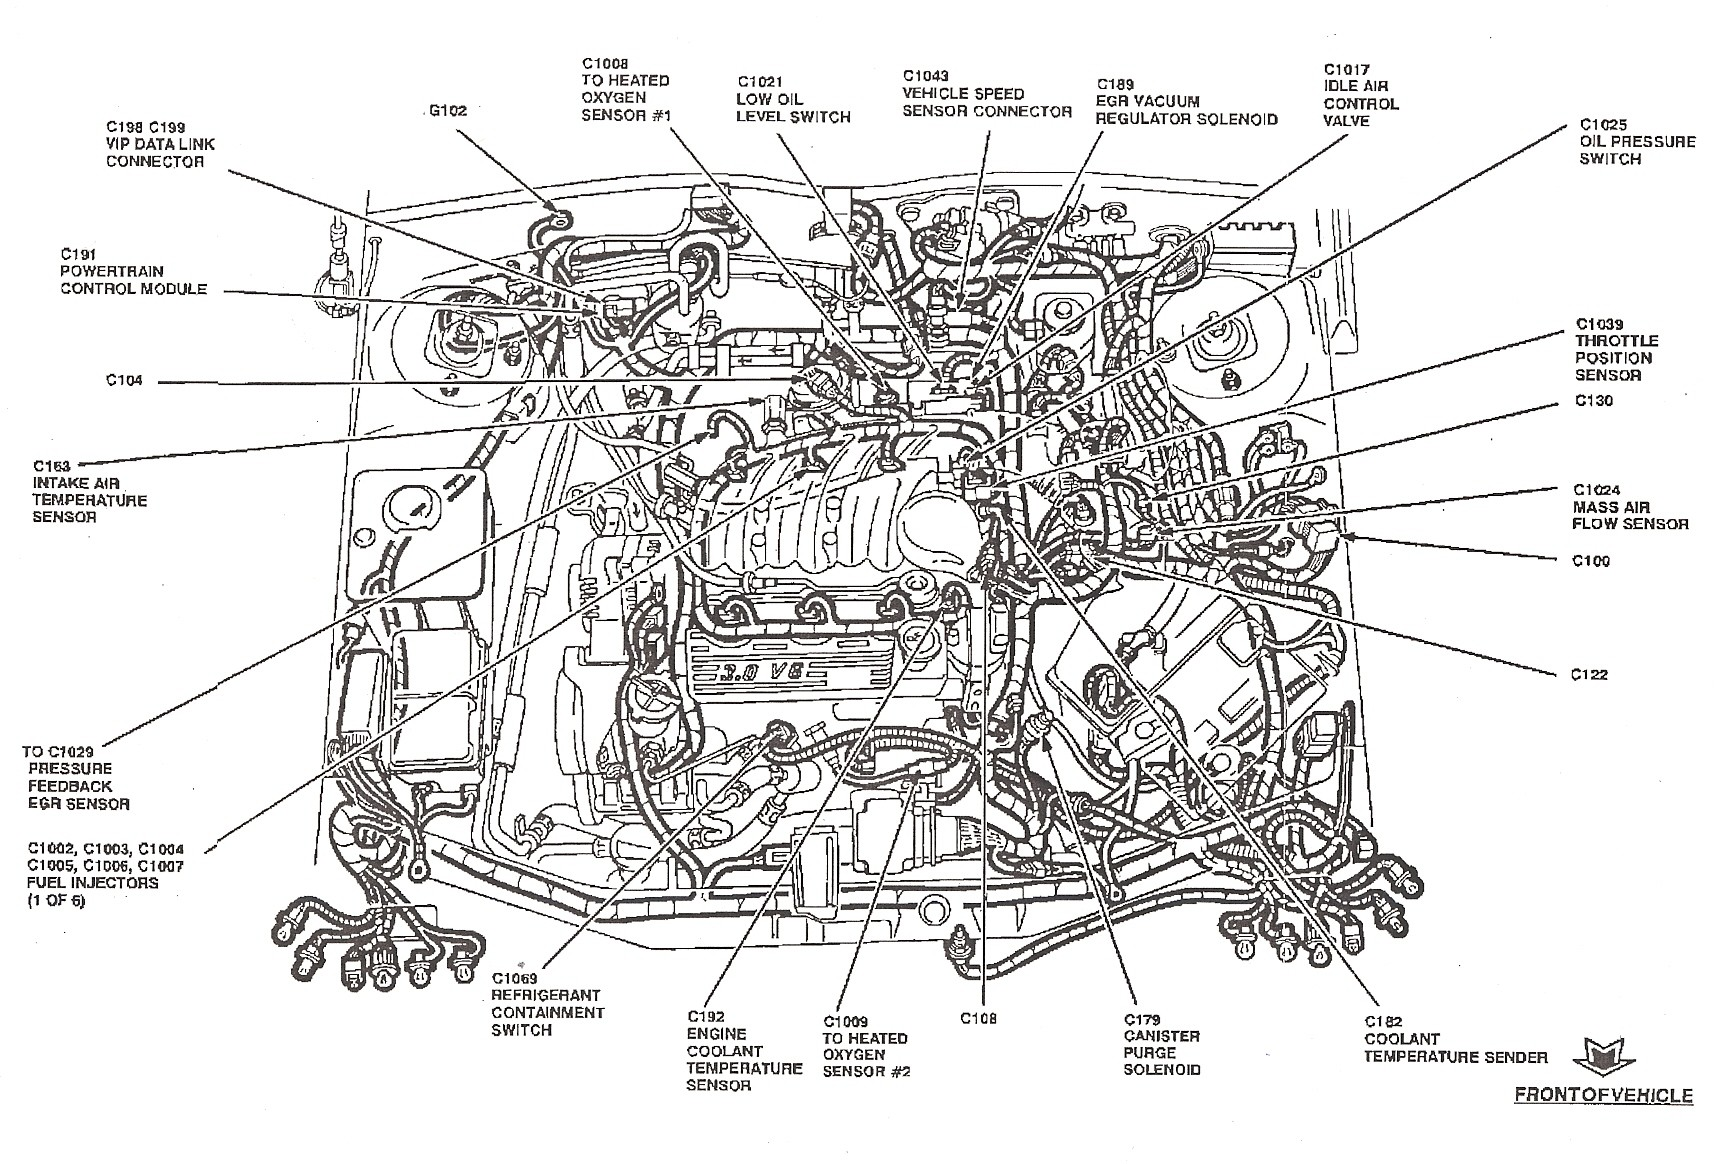 ford flex engine diagram wiring diagram library u2022 rh wiringhero today 2011 Ford Edge Engine Sensors 2011 Ford Edge Engine Components